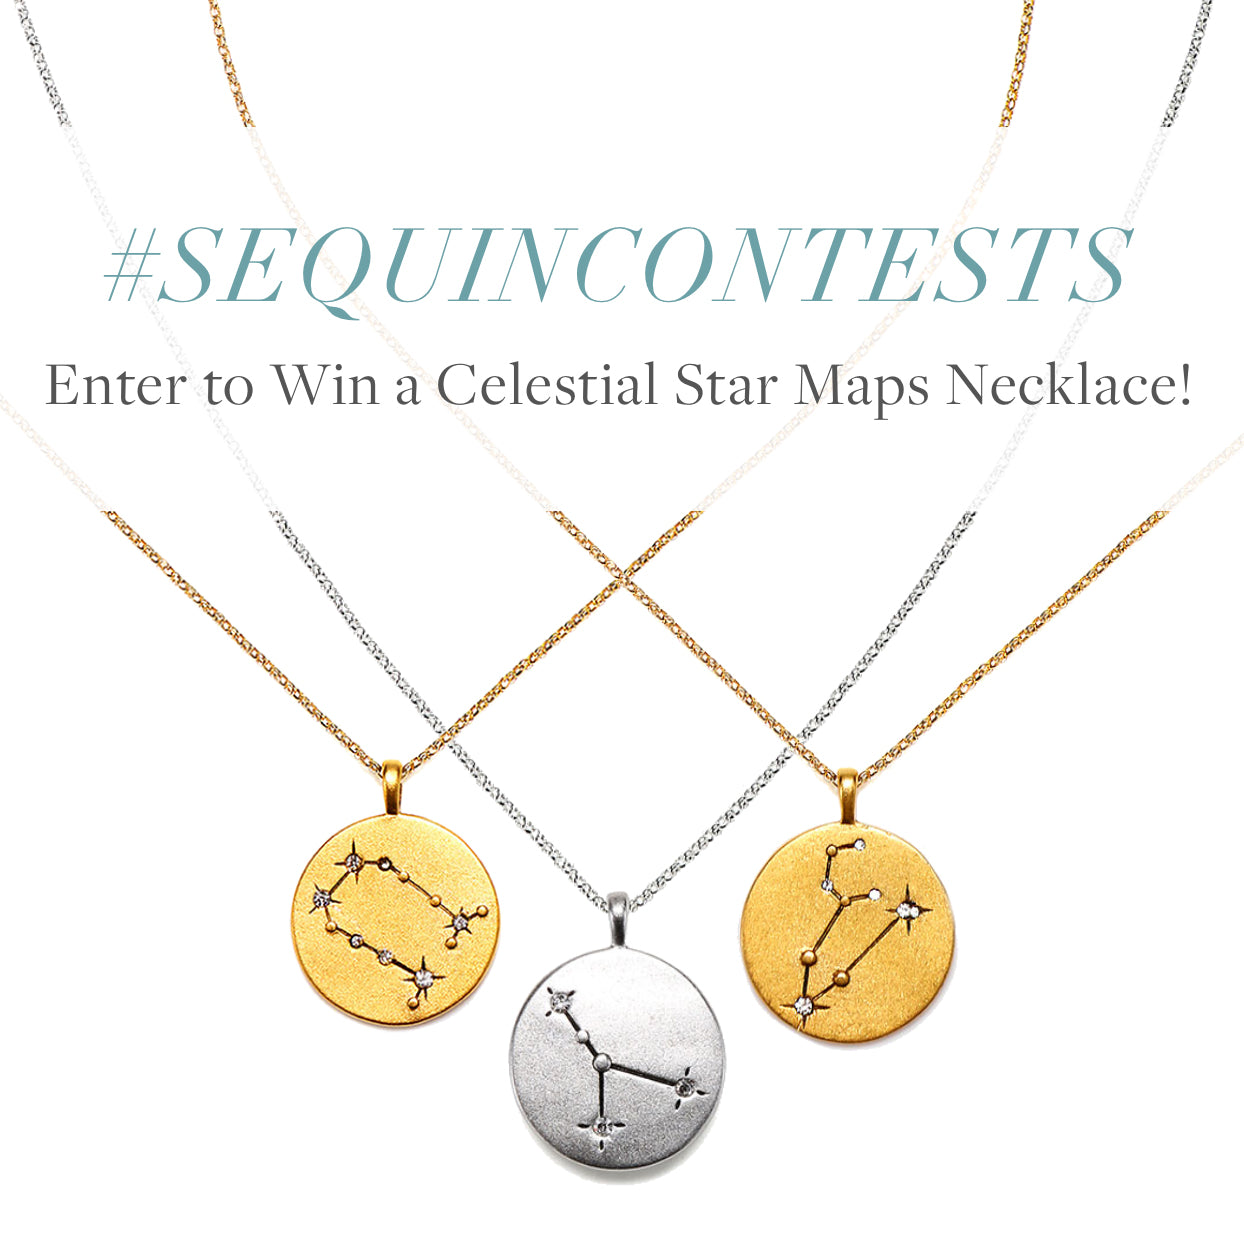 #SequinContests - Enter to Win a Celestial Star Maps Necklace!